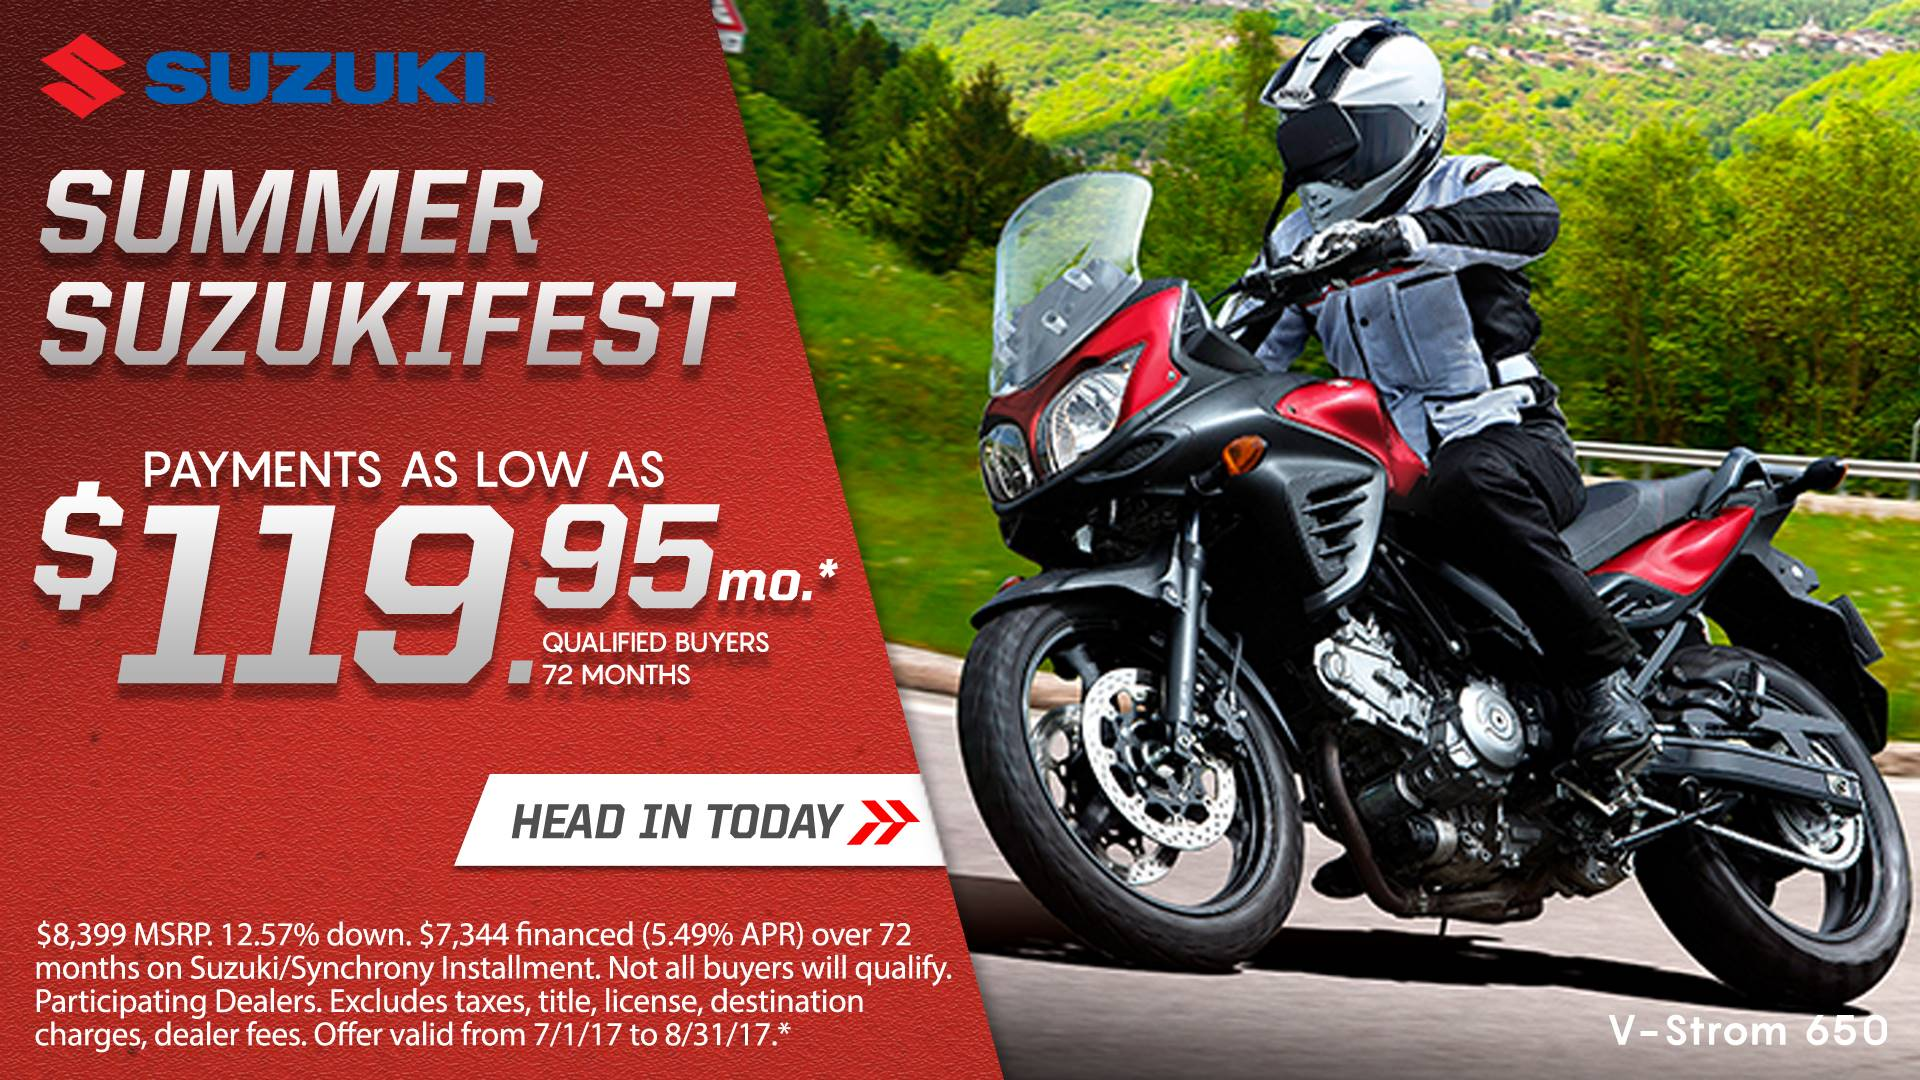 Suzuki Motor of America Inc. Suzuki Suzukifest DualSport and Adventure Motorcycle Financing as Low as 0% APR for 36 Months or Customer Cash Offer